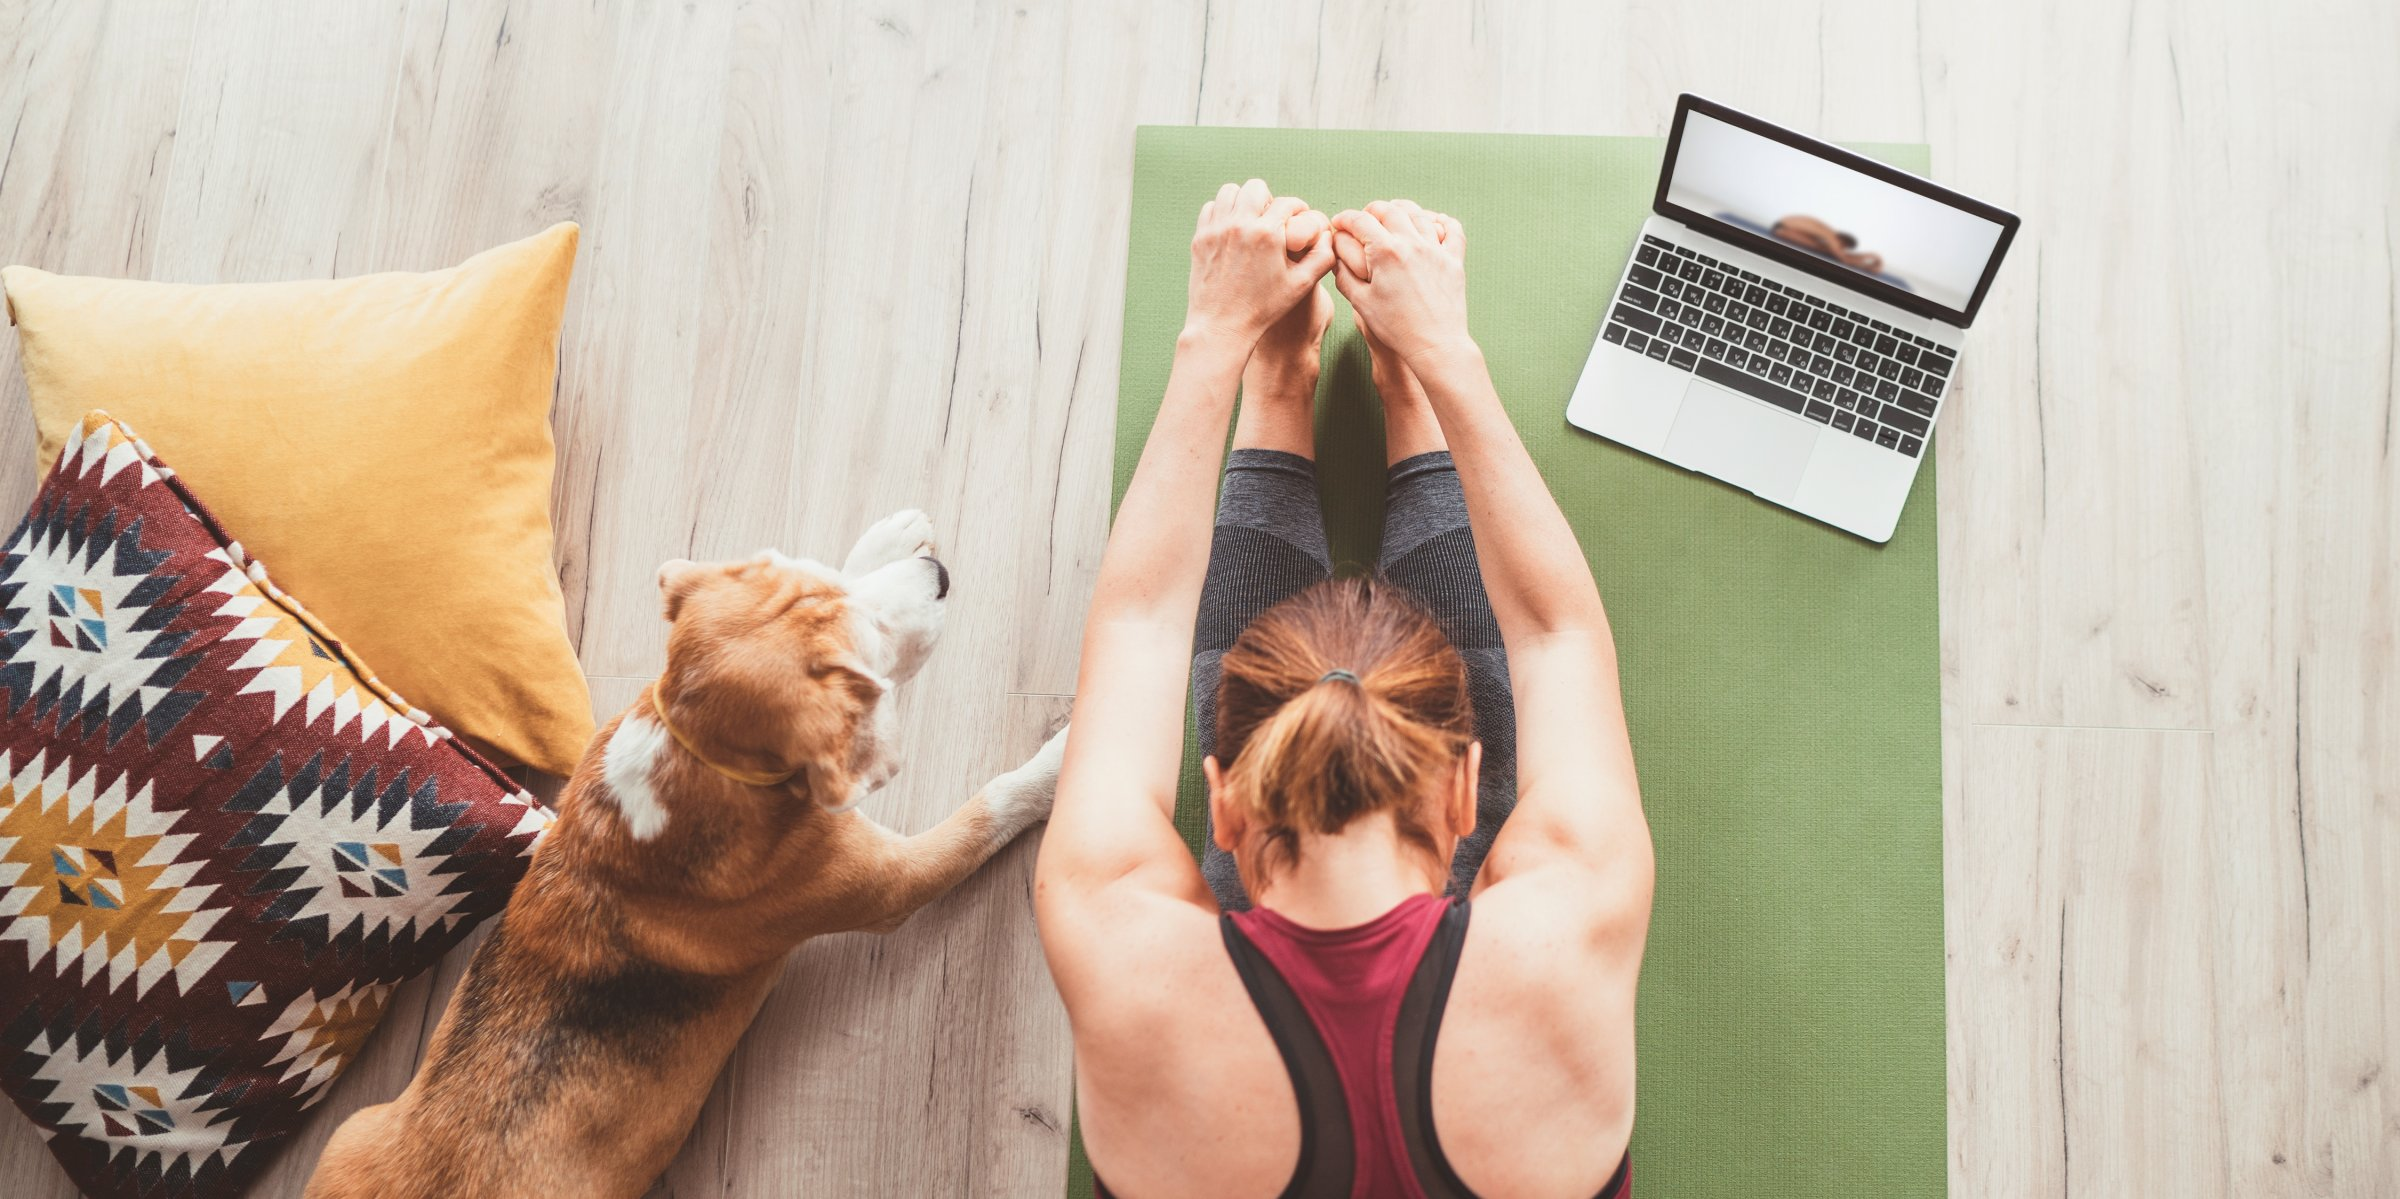 Mind, body and soul: Online events to learn and grow while social distancing